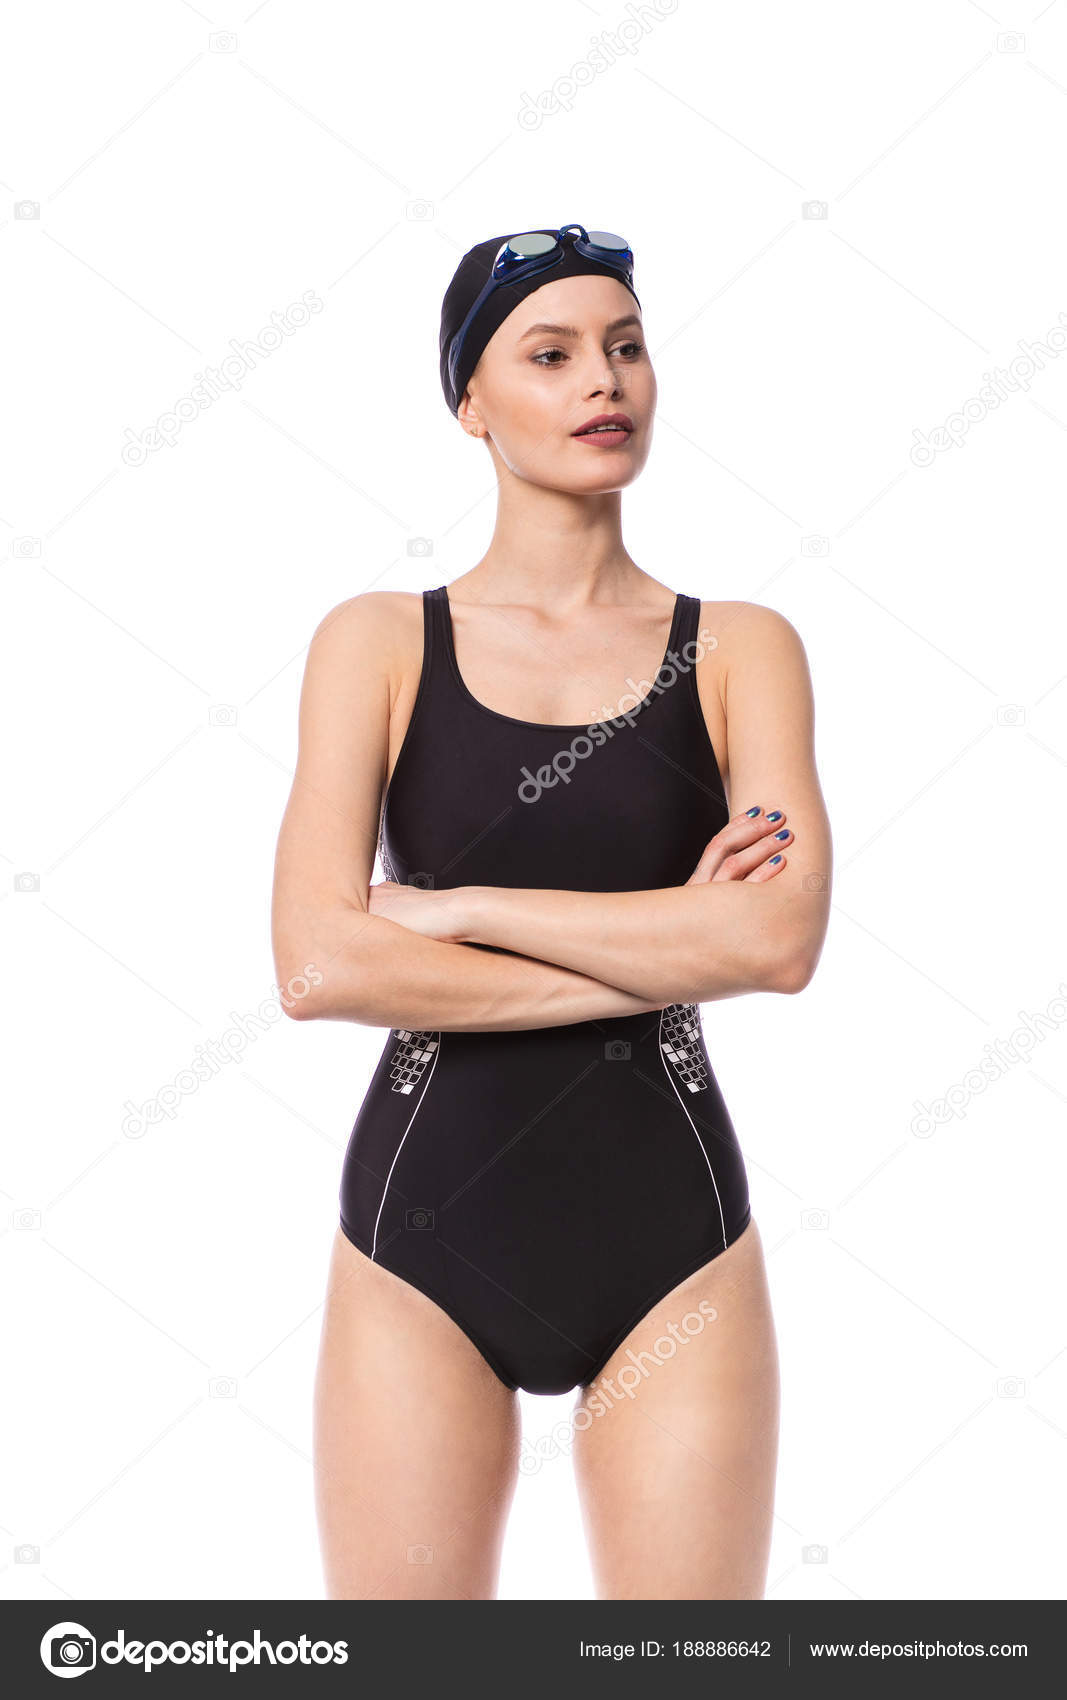 55ad8c91634a3 Swimmer women in swimming suit standing with folded arms looking one side  with confidence, isolated on white background — Photo by ...